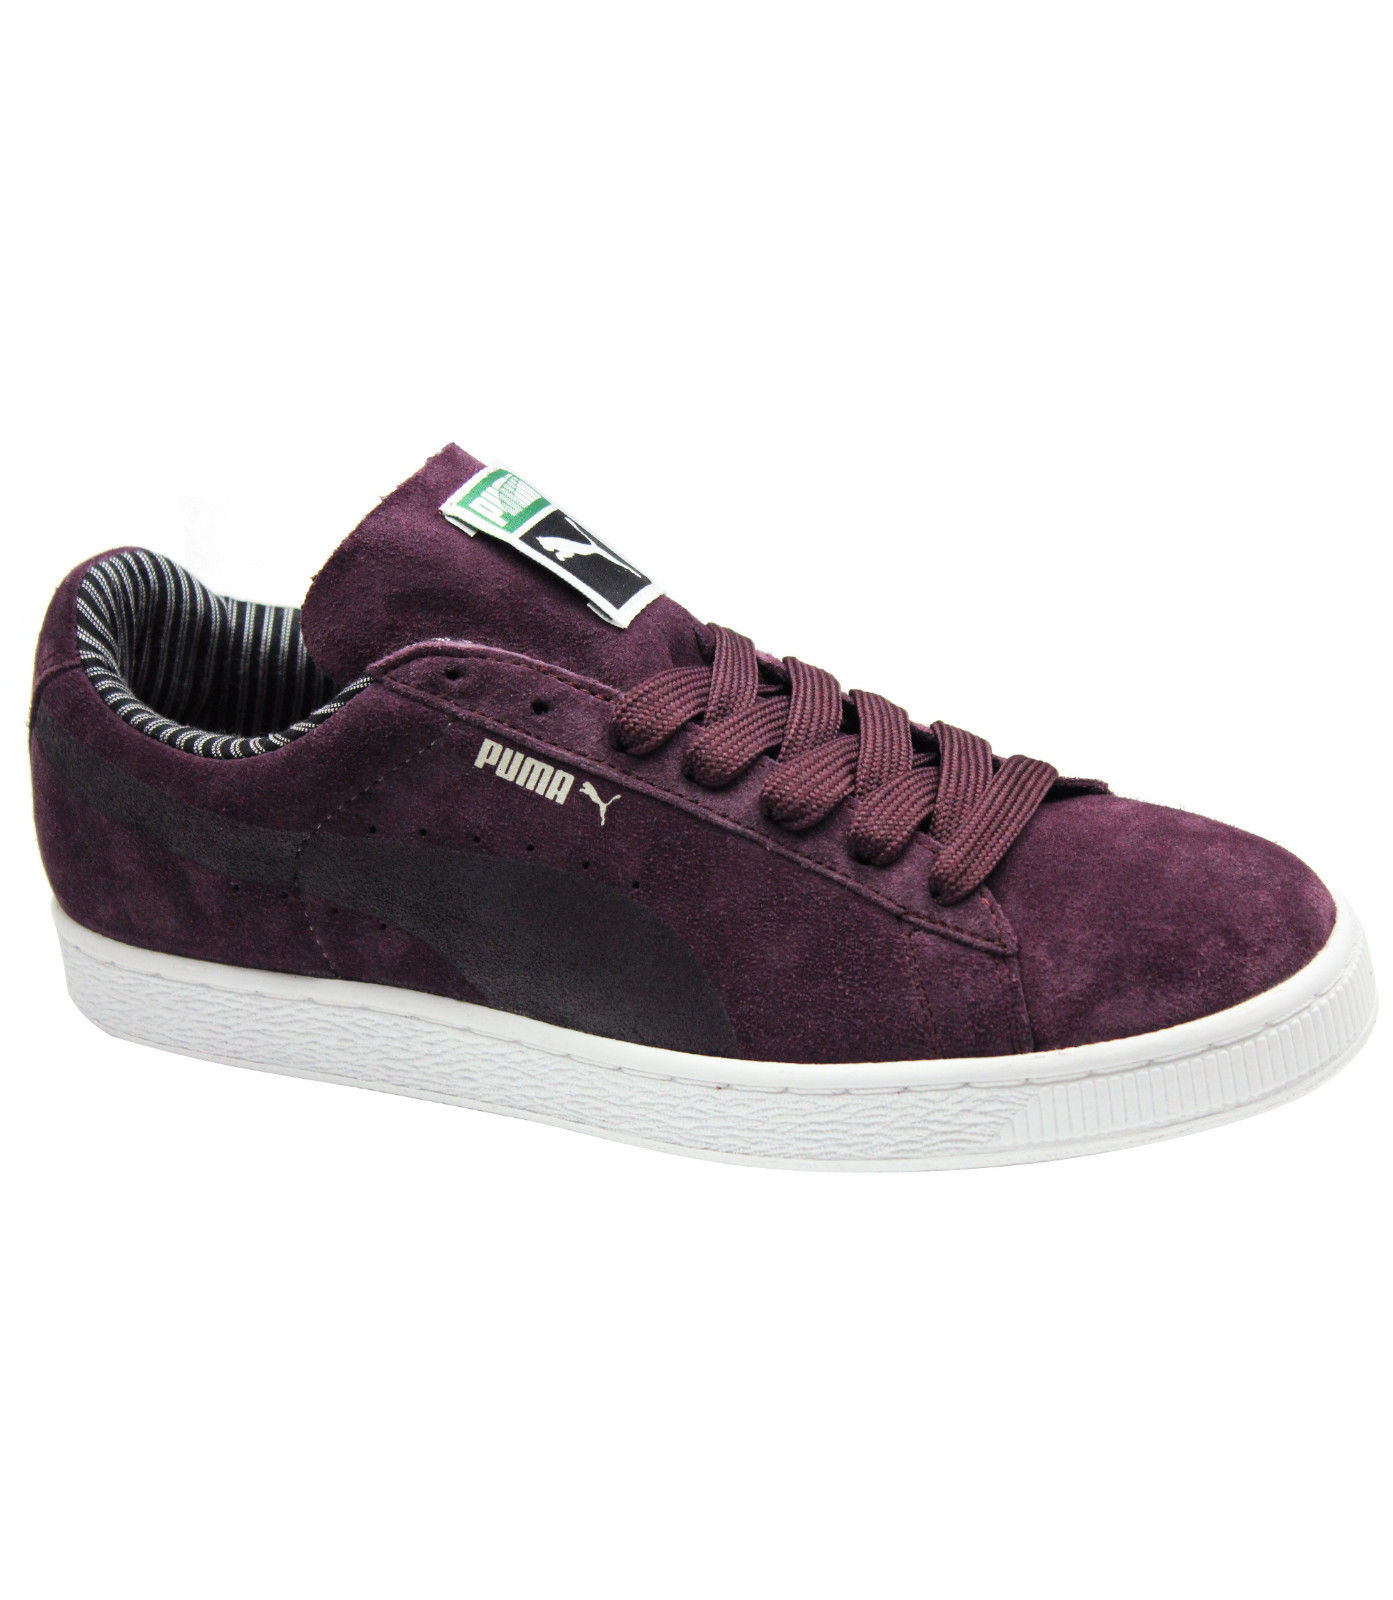 MENS-BOYS-PUMA-SUEDE-CLASSICS-ECO-LODGE-SKATE-